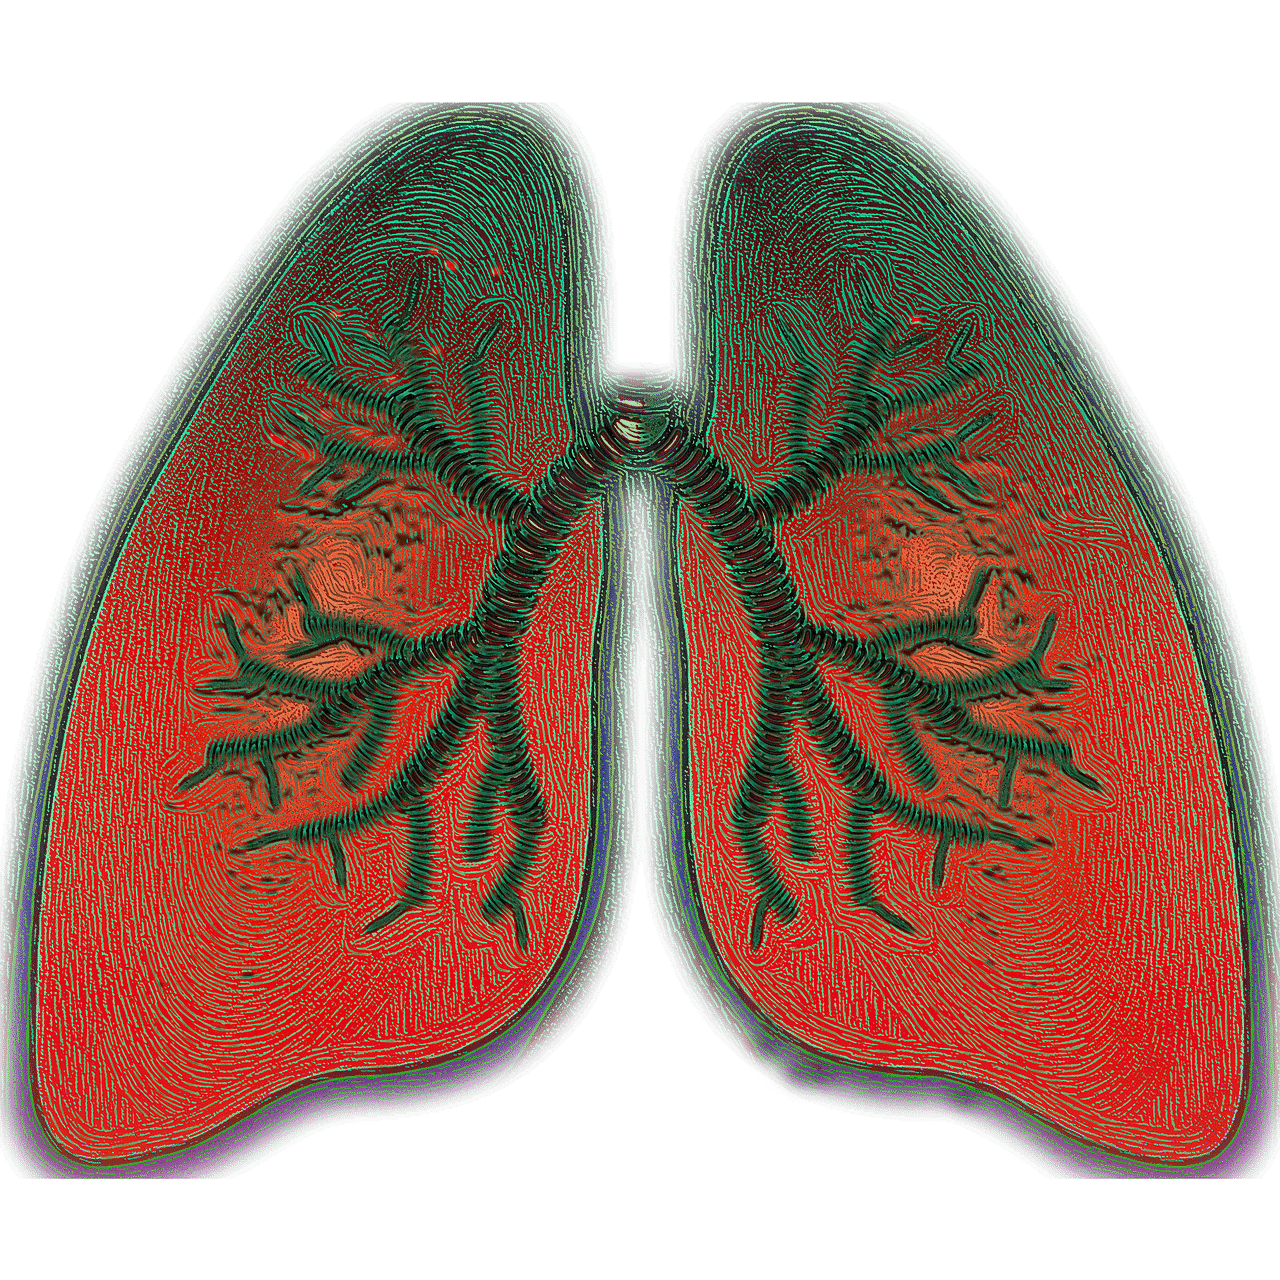 Herpes Virus Entry Mediator Gene Expression Considered to Be A Potential Biomarker of Asthma Severity Image